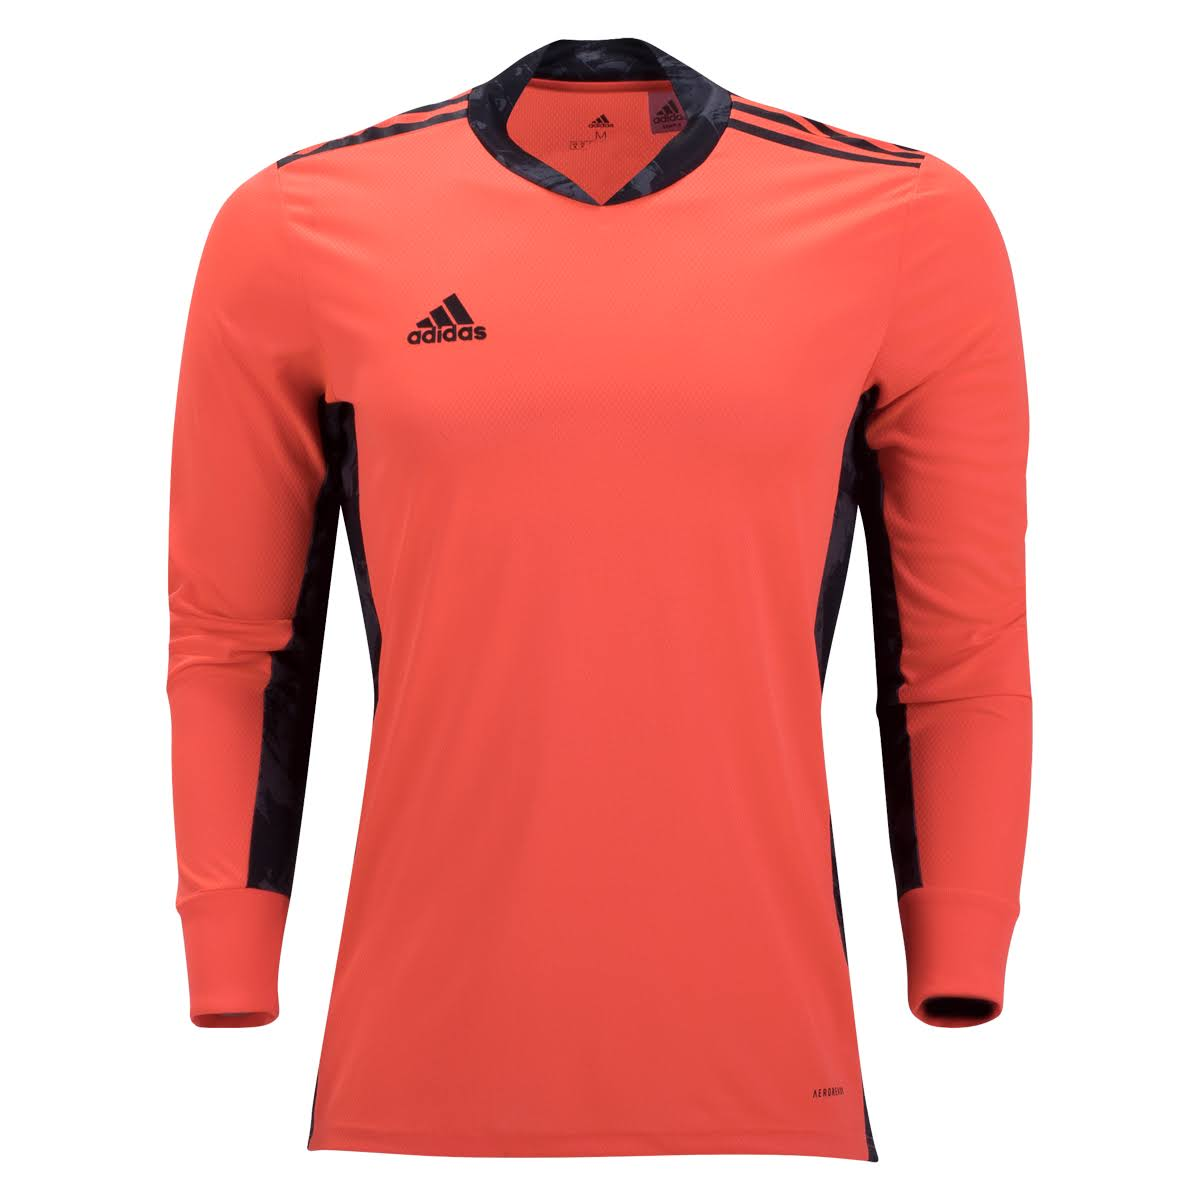 Adidas Adipro 20 Long Sleeve Goalkeeper Jersey - Orange - M